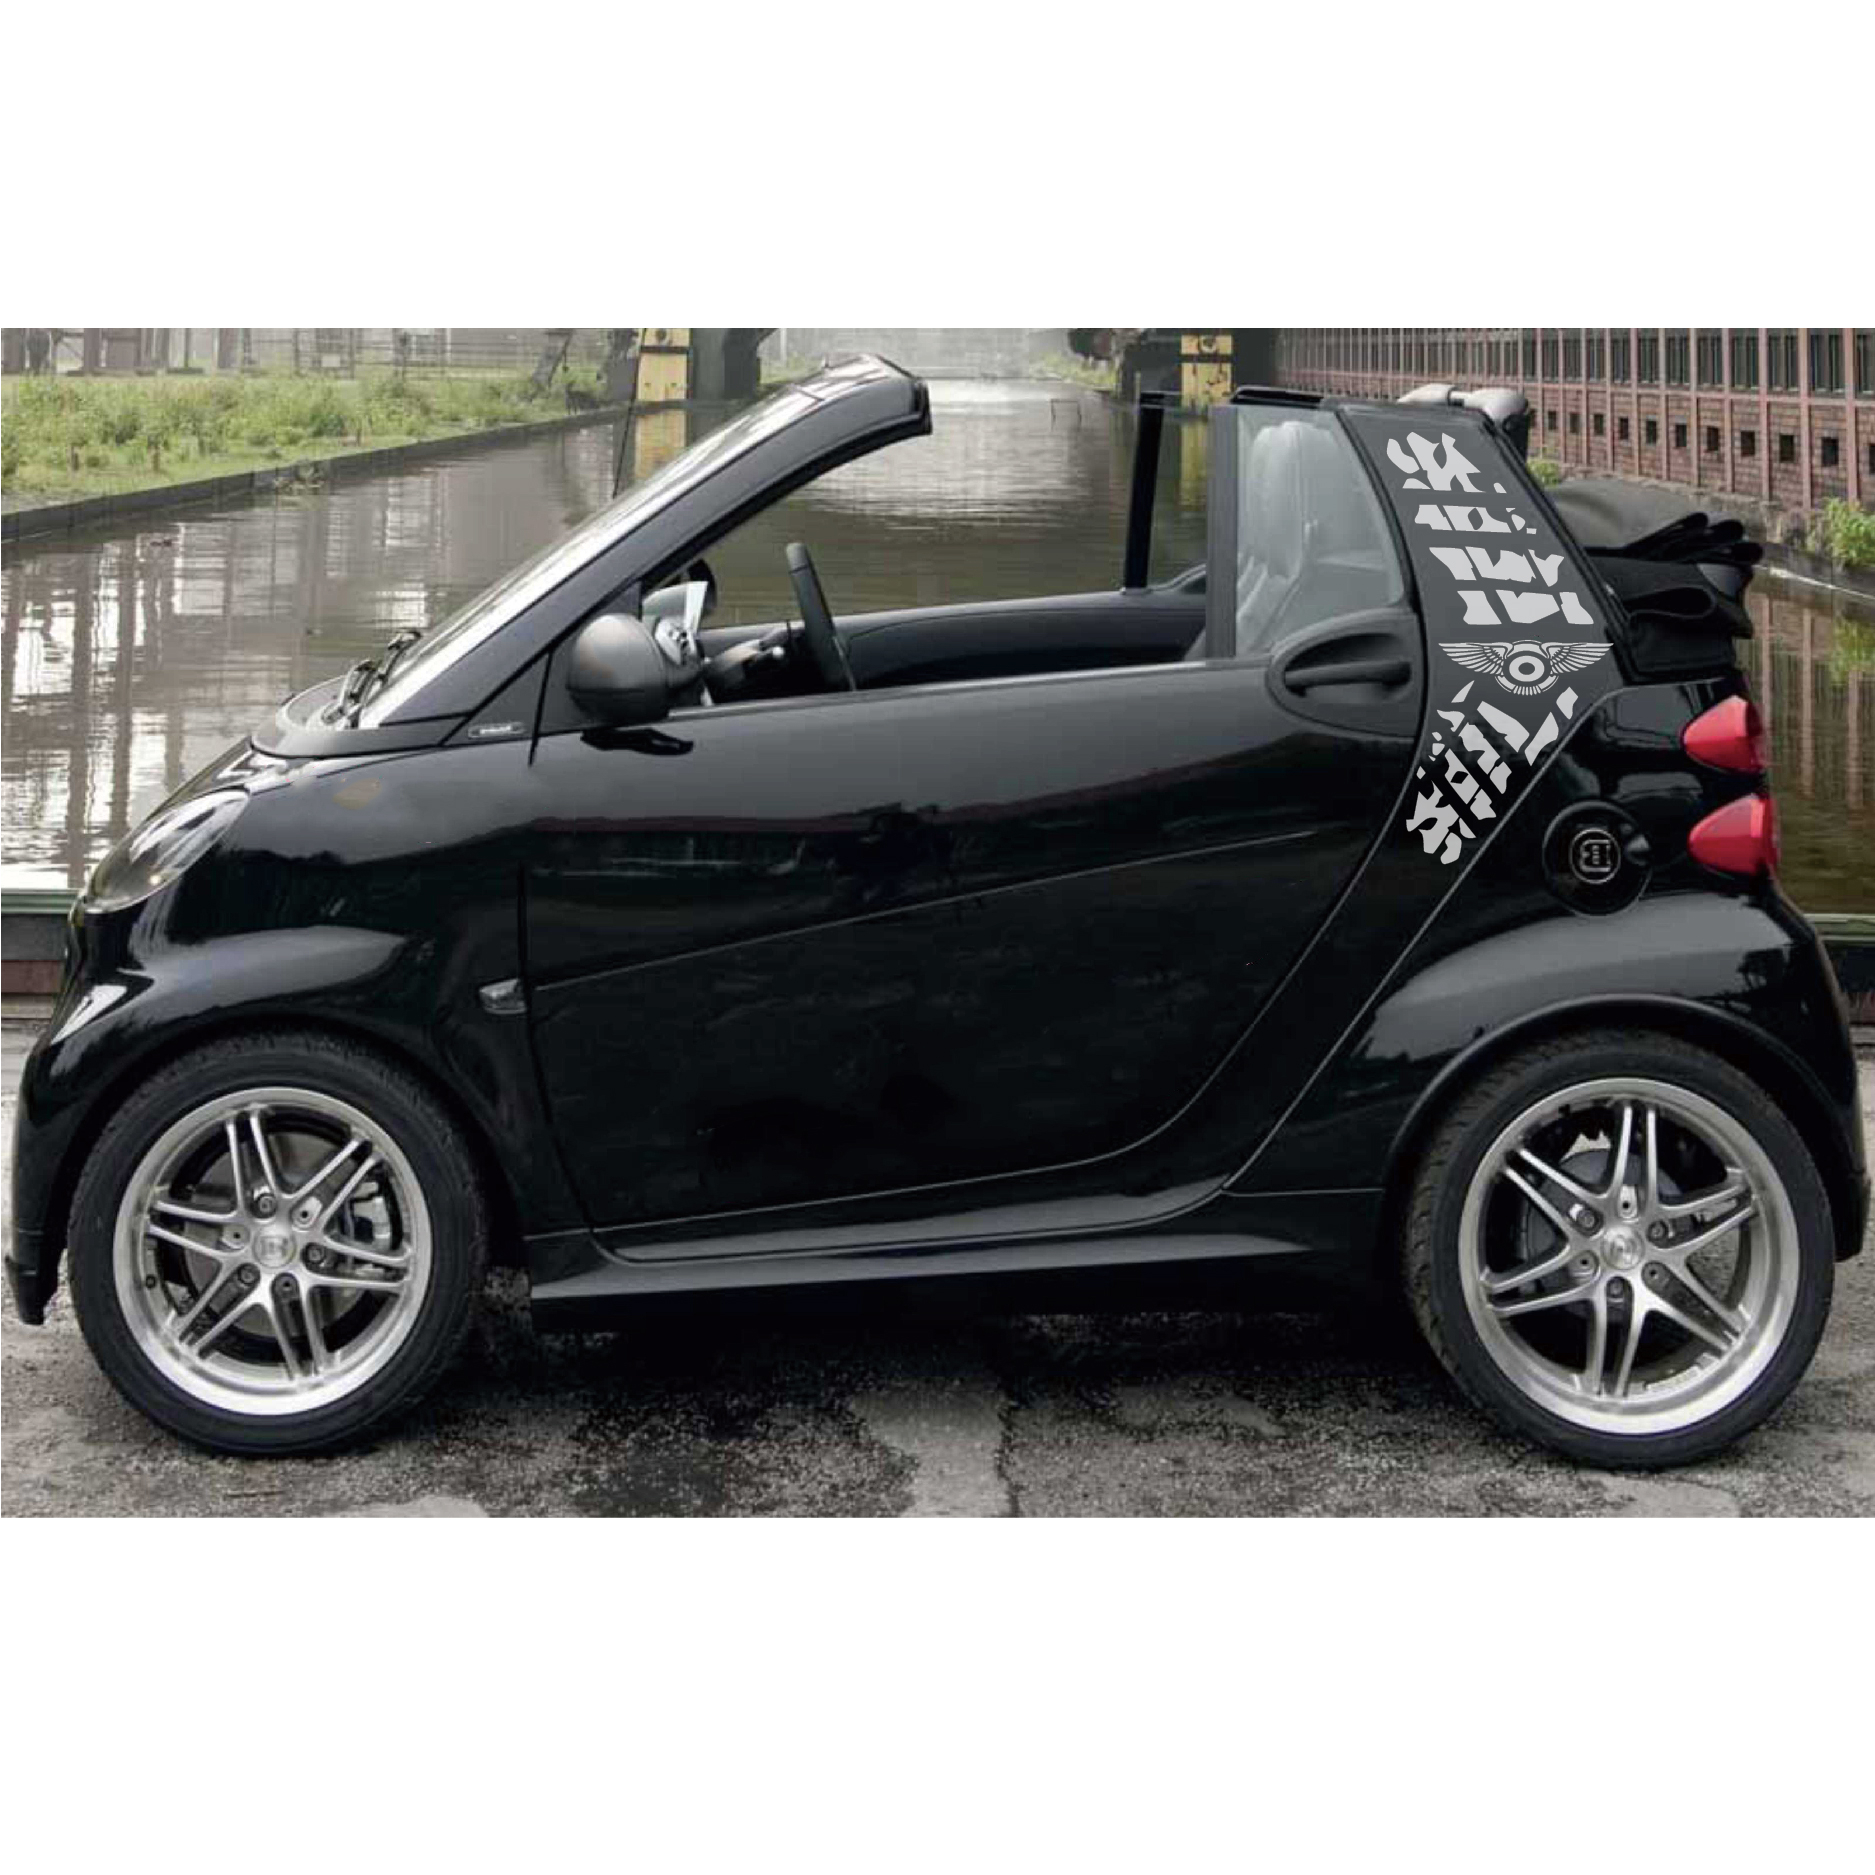 customize for smart mini 2 doors sticker car accessories decals 2pc cool tire print styling graphic vinyls scratch car stickers in Car Stickers from Automobiles Motorcycles